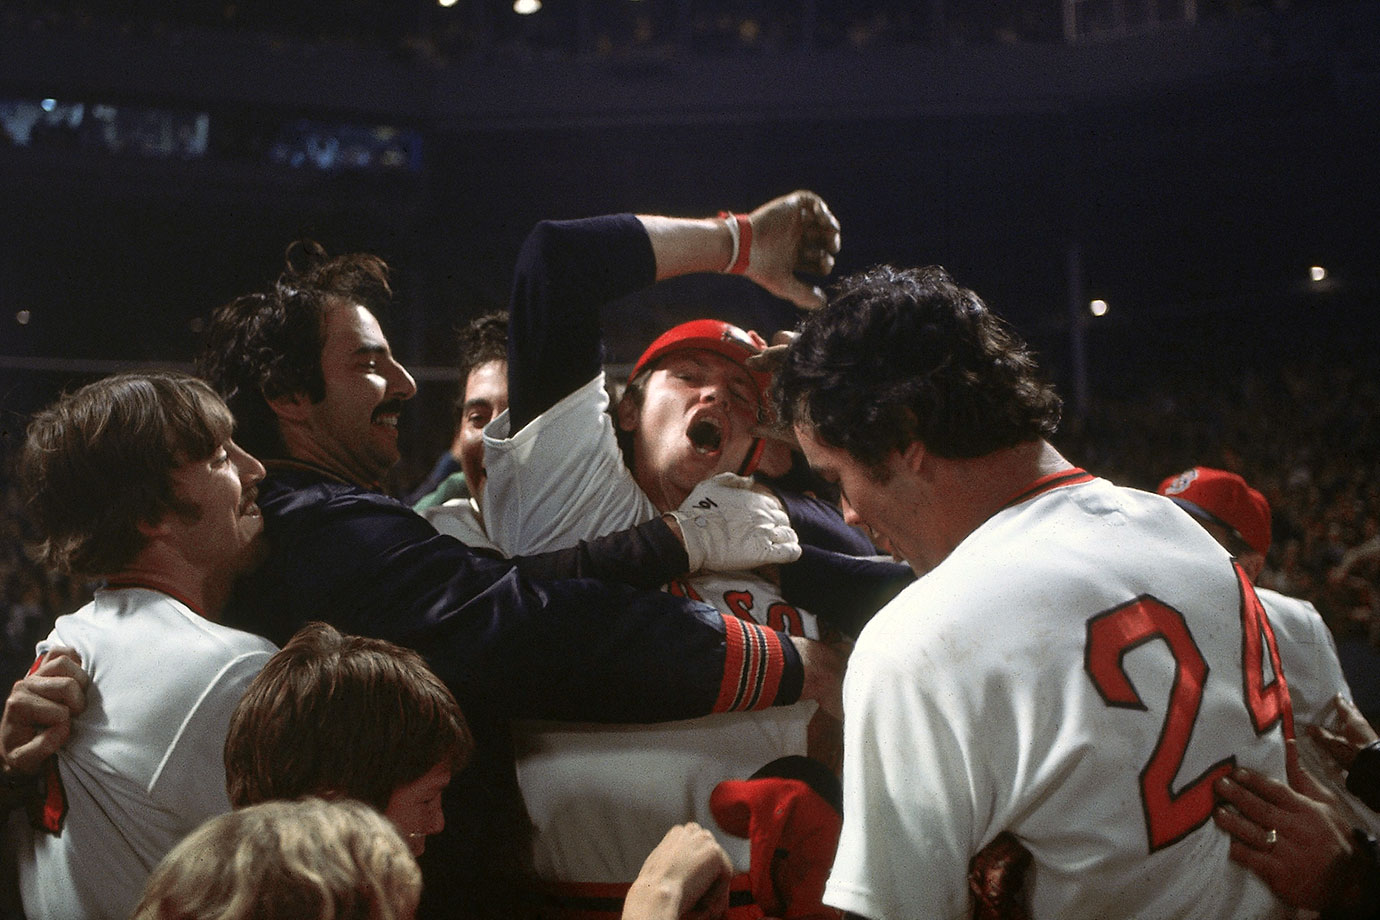 A dramatic Game 6 entered the 12th inning tied at six when Boston's Carlton Fisk led off against Pat Darcy. Fisk lofted a ball toward the left field foul pole and began waving his arms, imploring it to stay fair. It did, and the Red Sox had won arguably the best game in baseball history and forced a Game 7. Cincinnati, though, beat the Red Sox in that decisive game for its first title in 35 years.